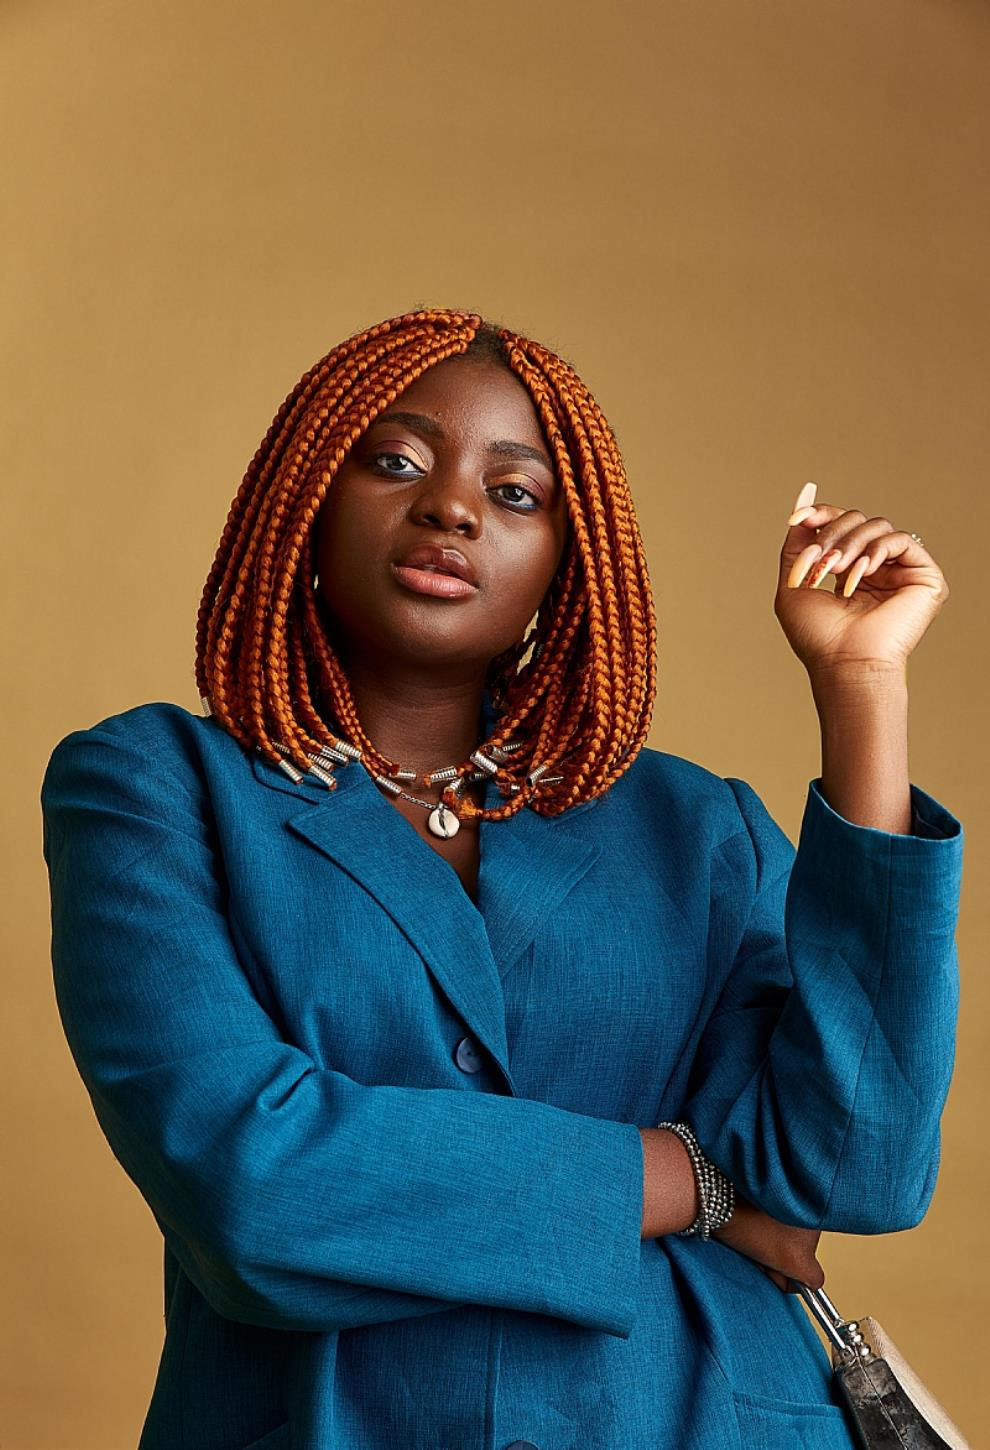 Kuukua Eshun: Let's Talk About Mental Health Within The African Community